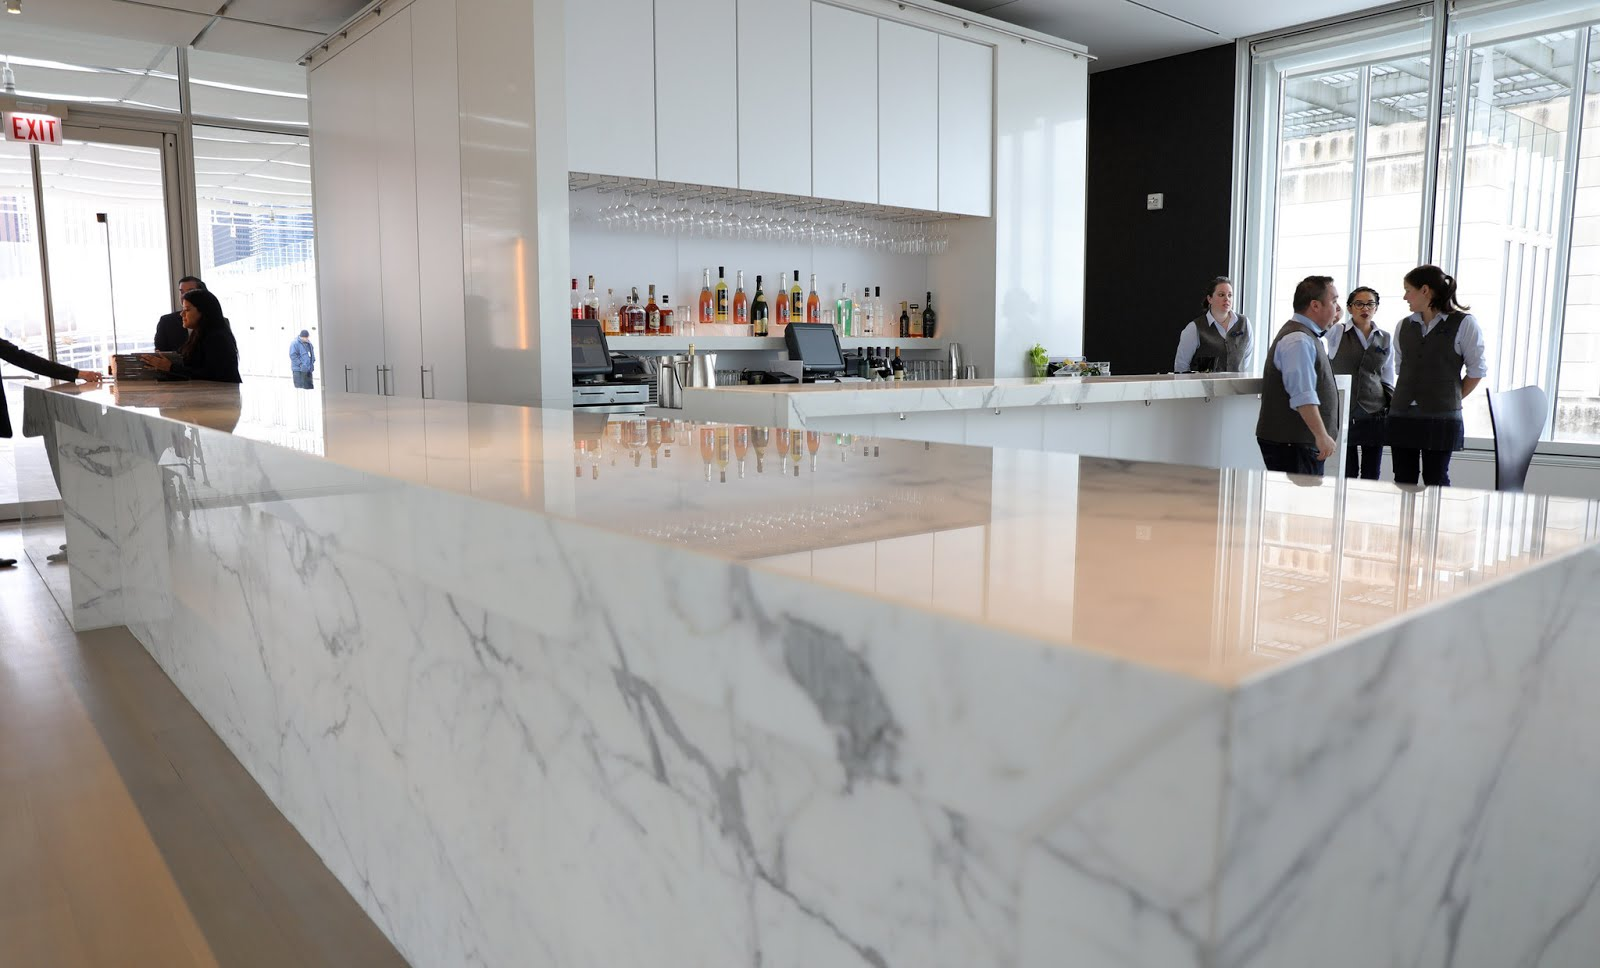 The sleek and clever materials in the space continue on by the bar where the white marble sits heavy yet acts as another surface to reflect the light in ... & TSM 2015 BAC LIGHTING DESIGN: Perception in Lighting - A Moment in ... azcodes.com